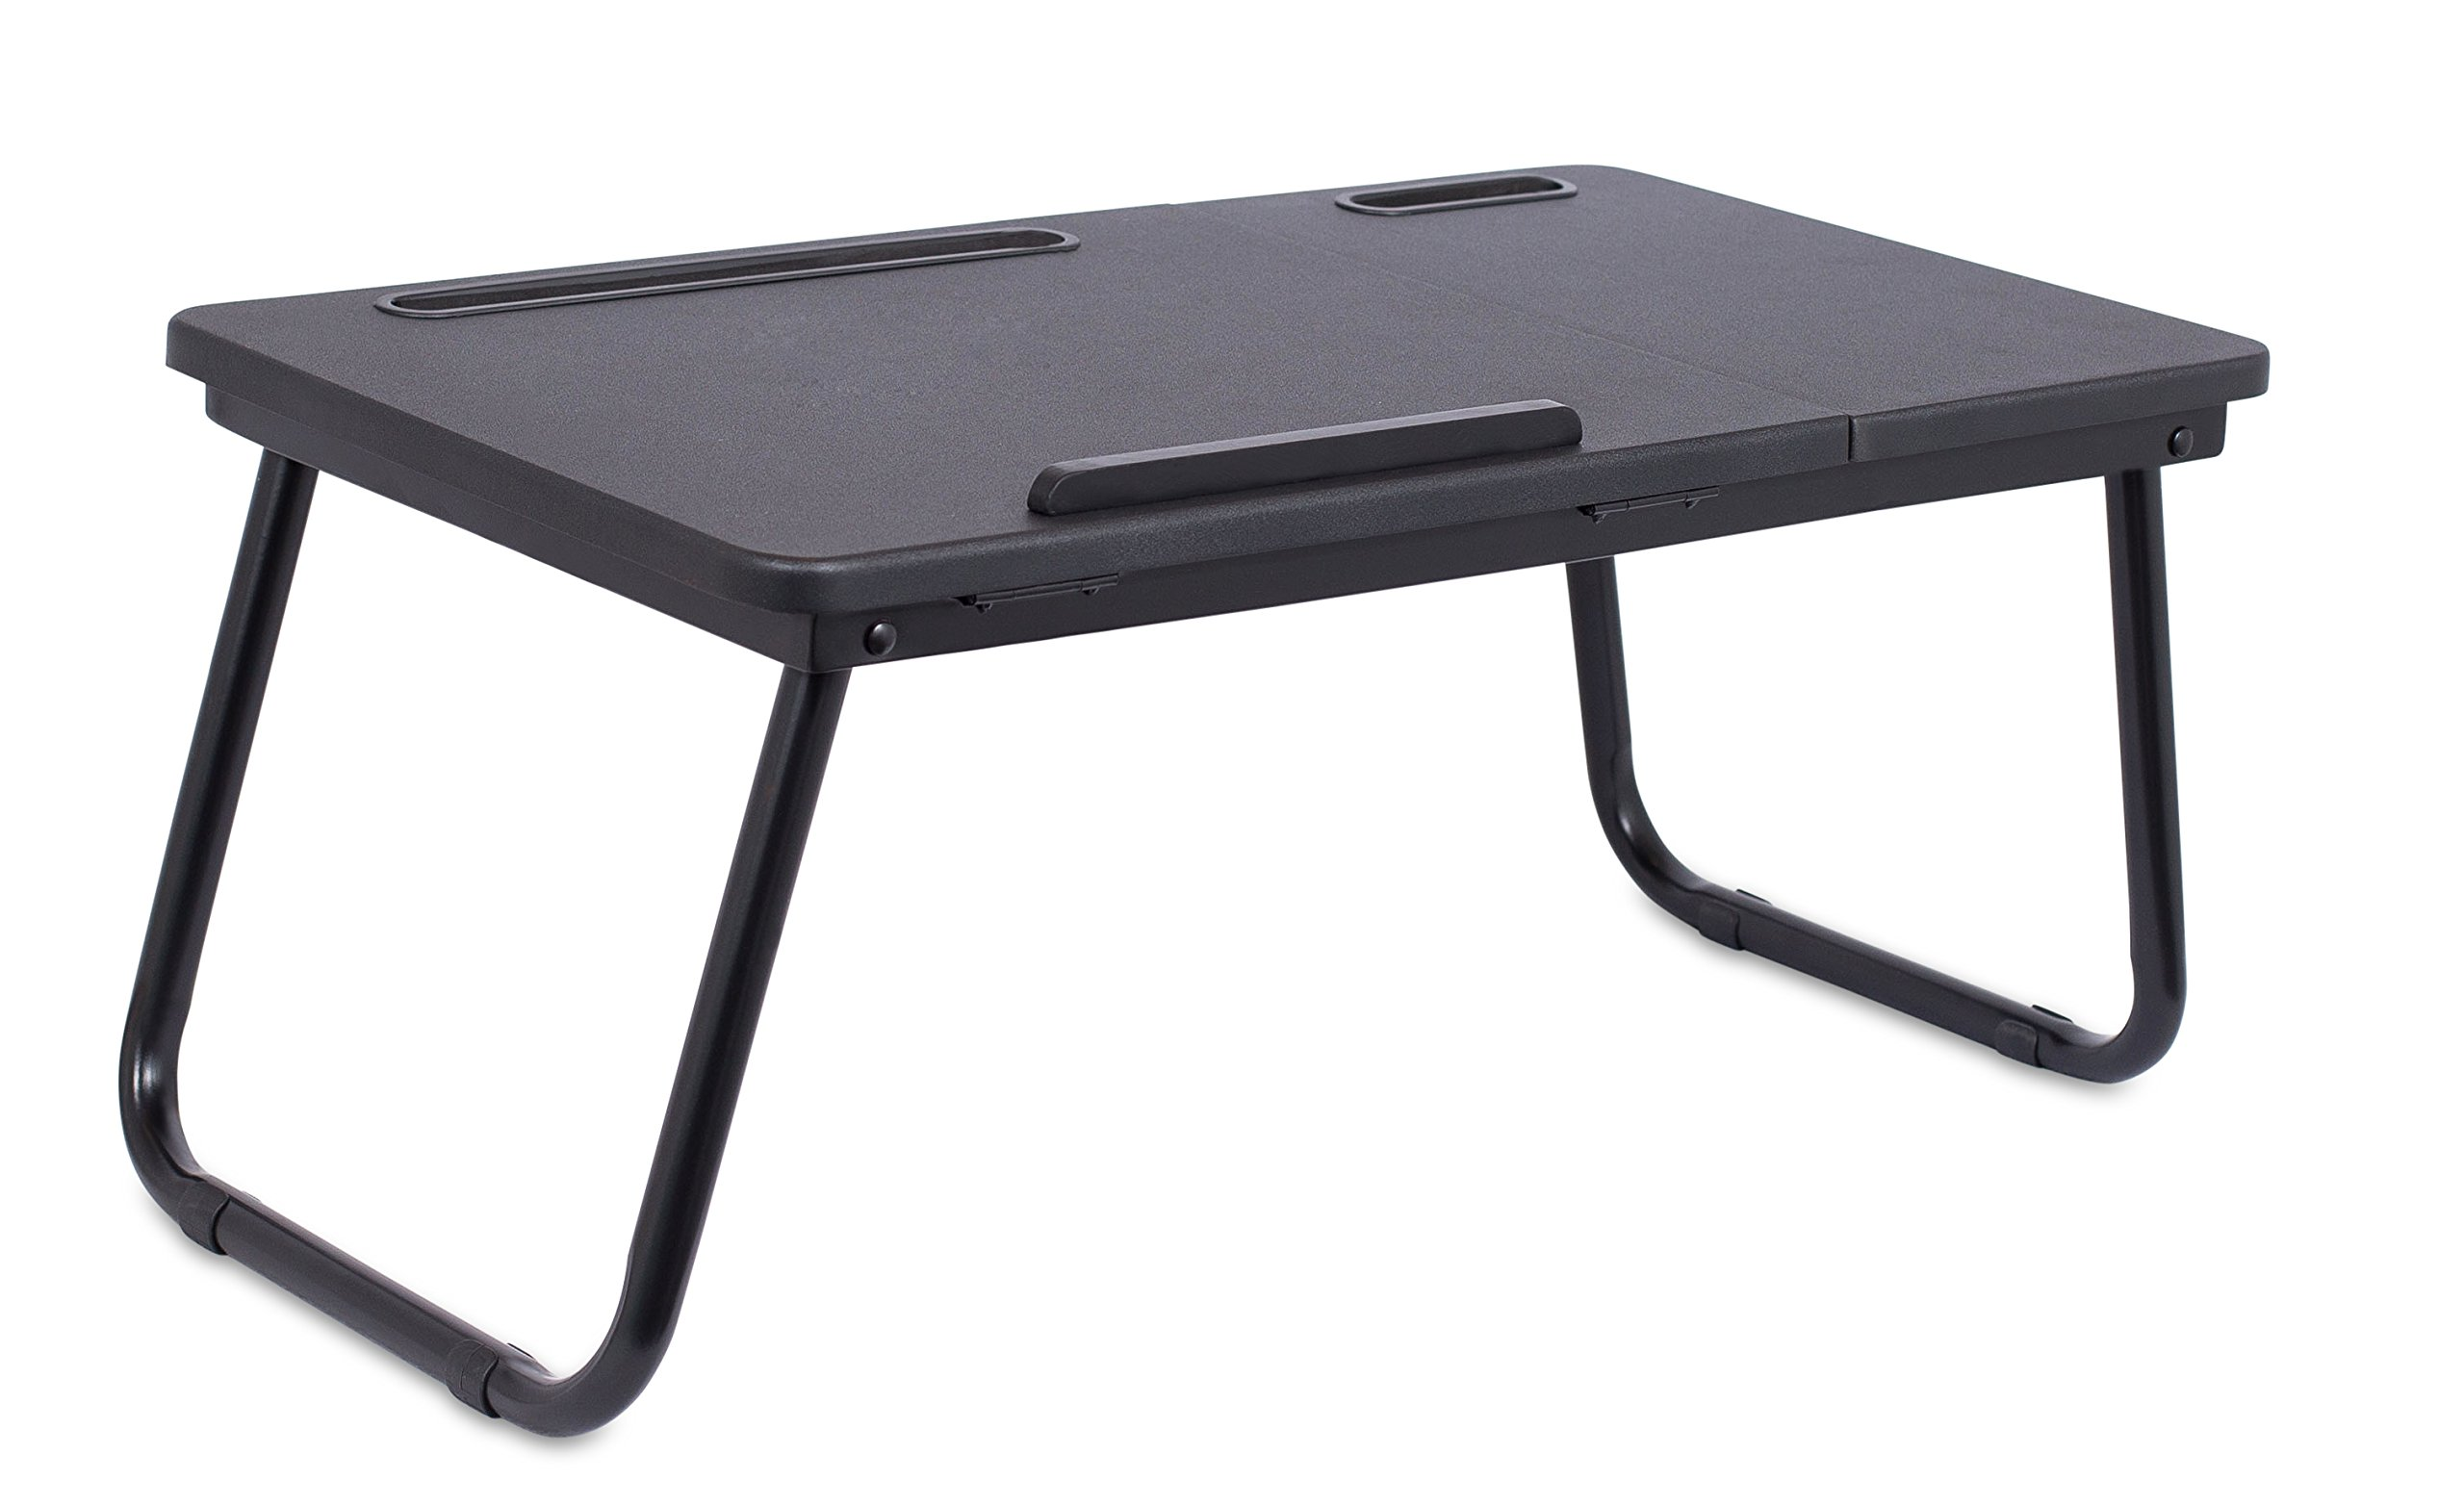 Sofia + Sam Lap Tray with Tablet & Phone Slots | Metal Folding Legs | Lap Desk with Tilting Top | Laptop Stand | Breakfast Serving Bed Tray | Black by Sofia + Sam (Image #2)